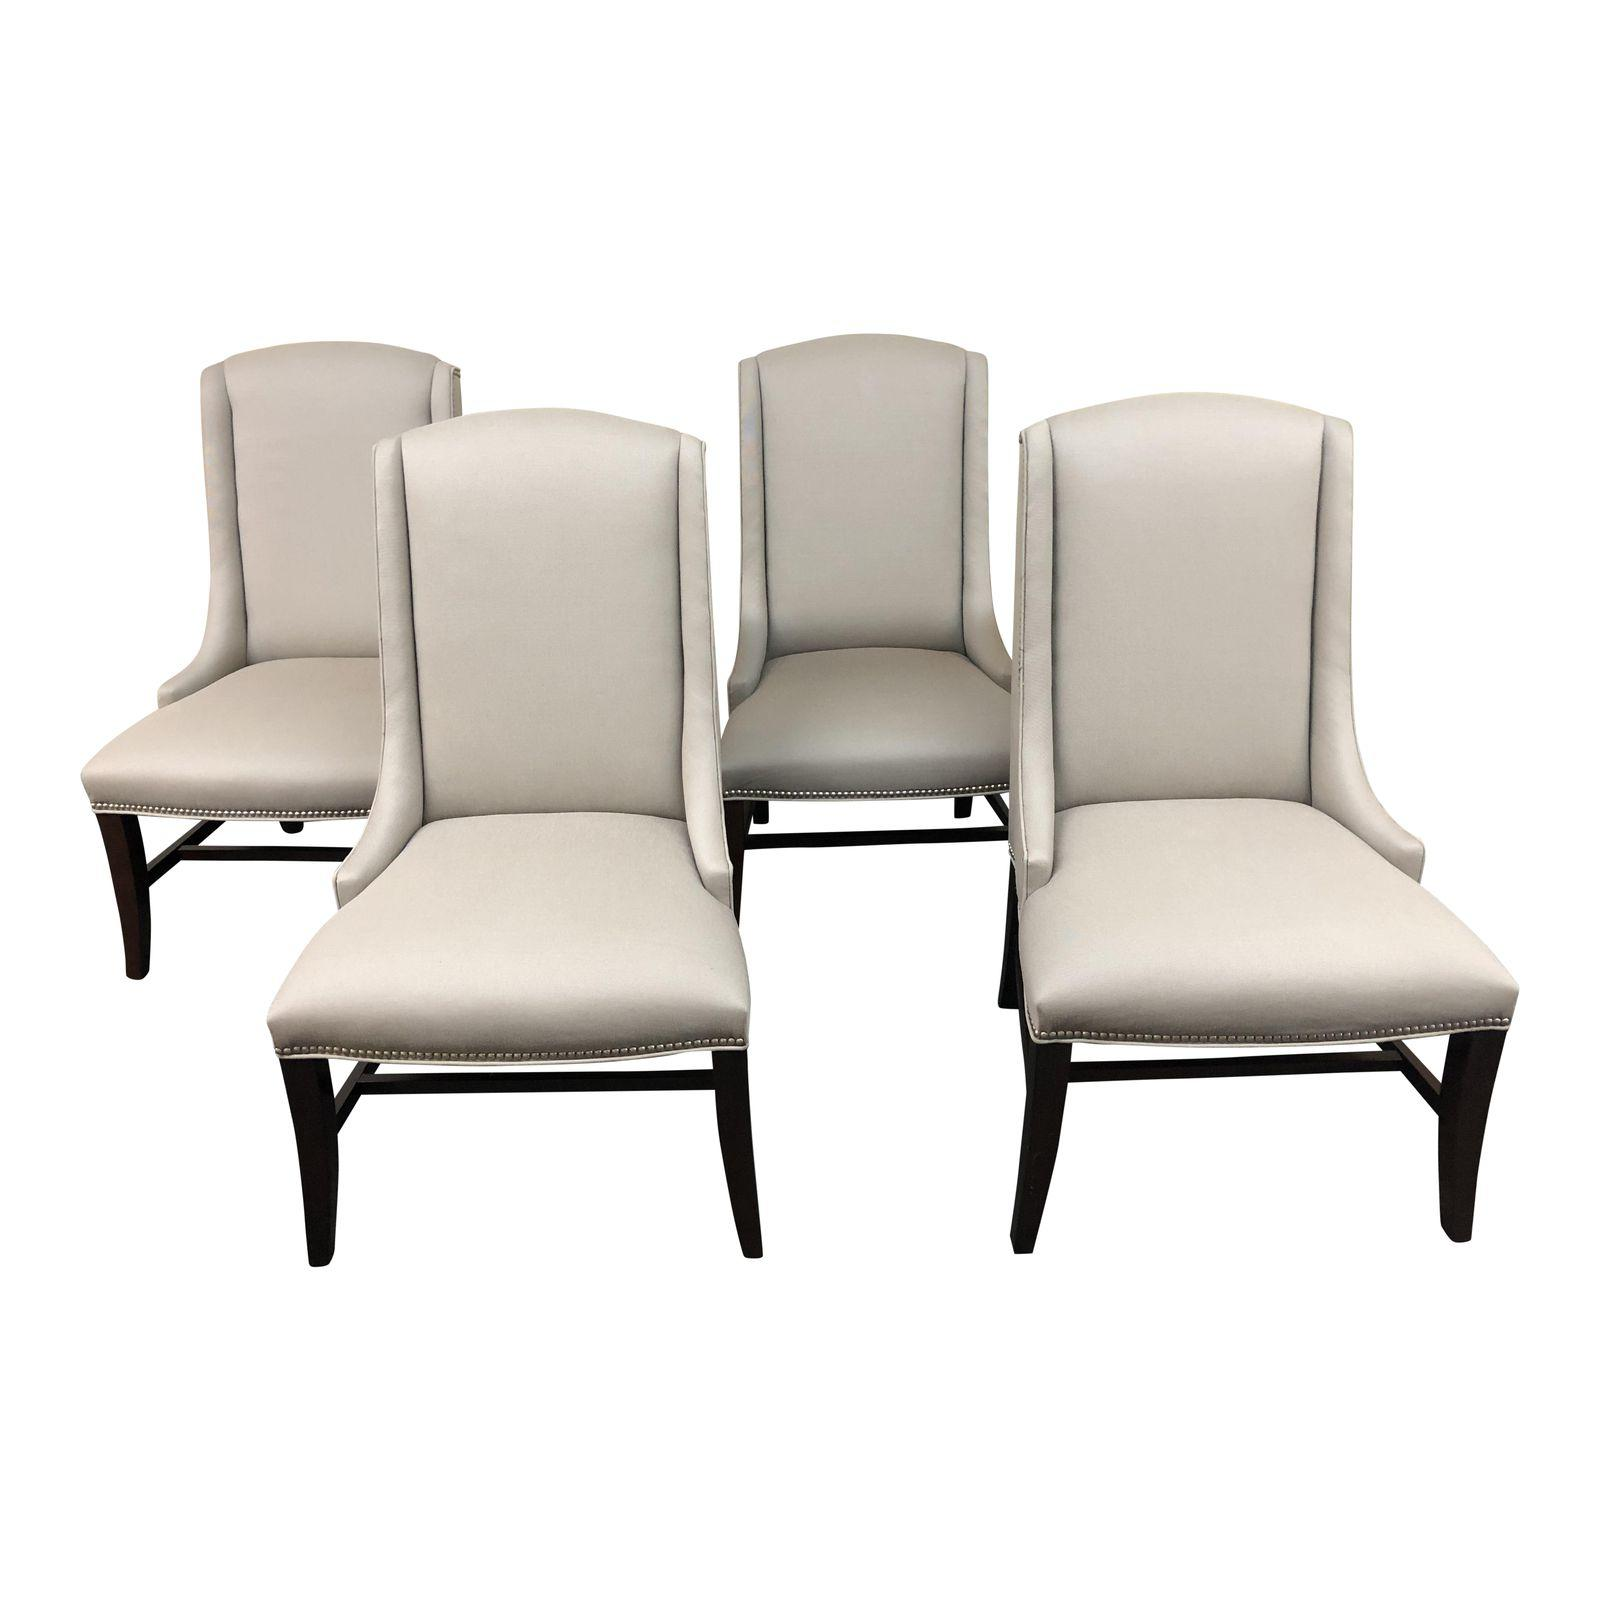 dining chairs set of 4. Bernhardt Upholstered Dining Chairs \u2013 Set Of 4. Original Price: $4,800.00 4